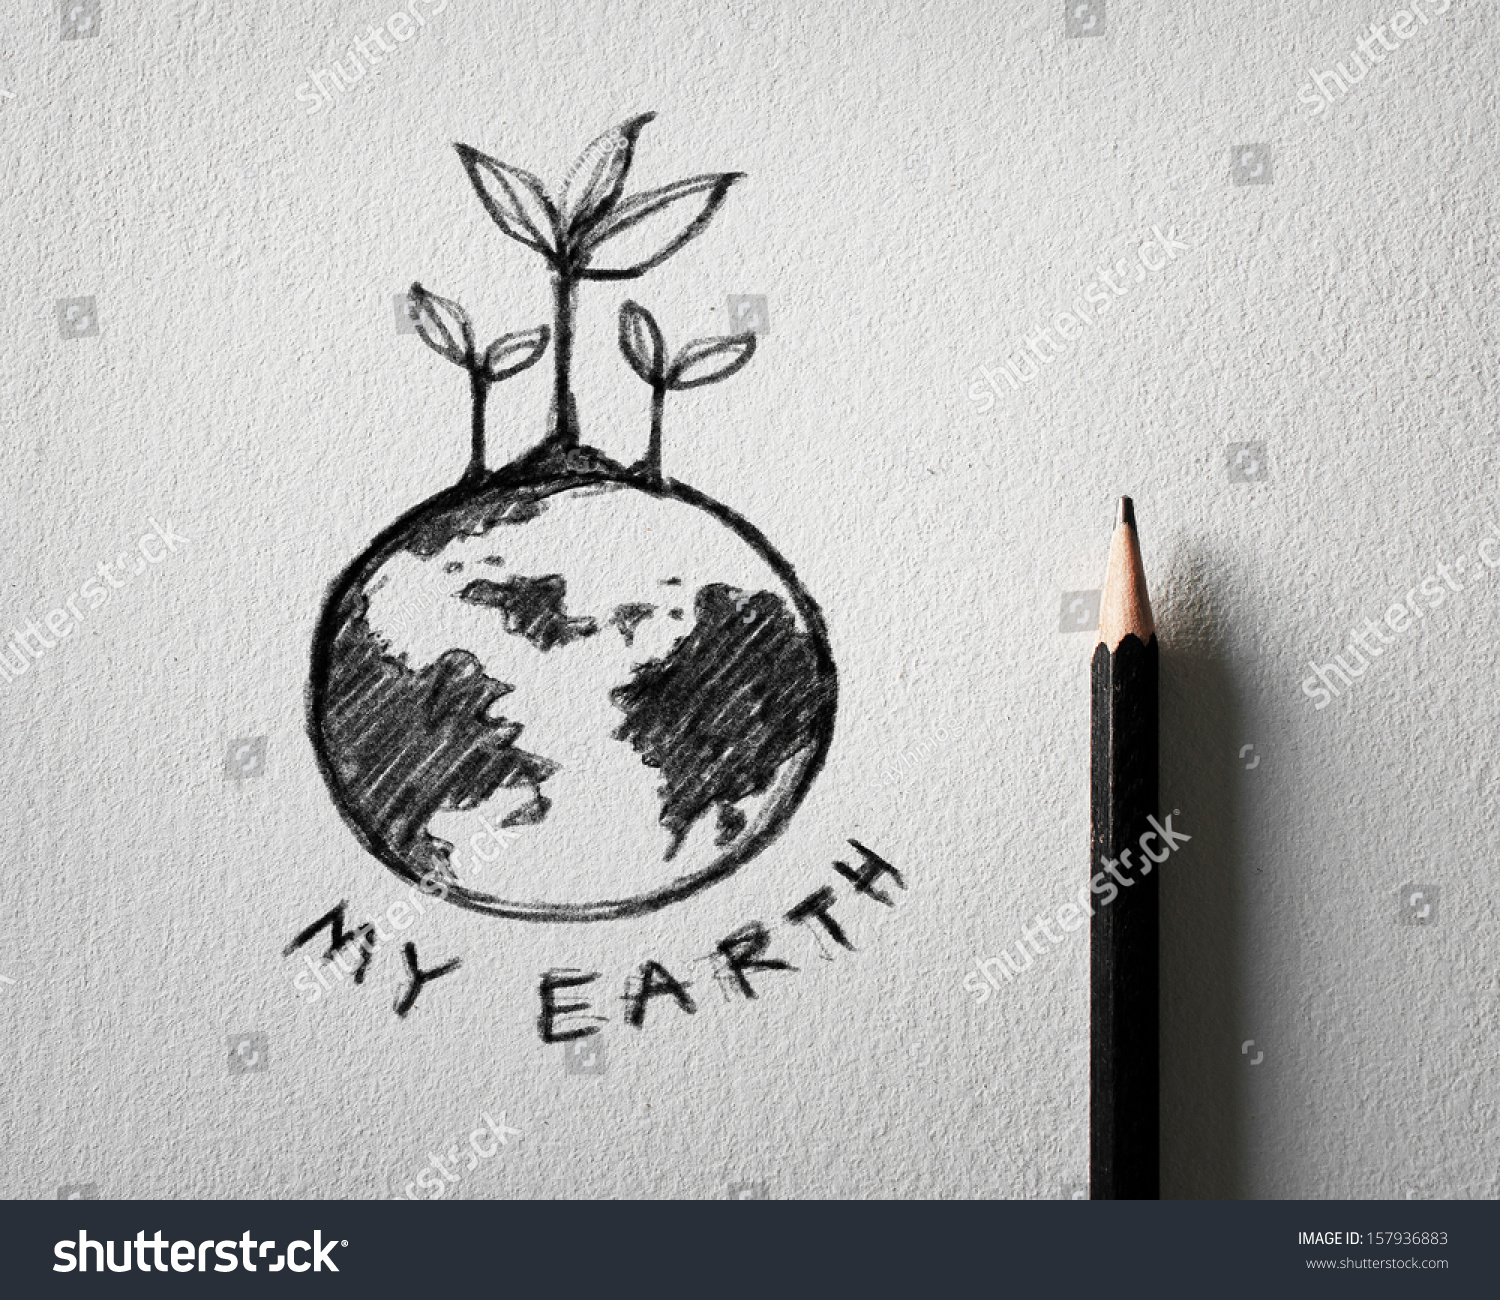 Pencil sketch of earth concept on white paper